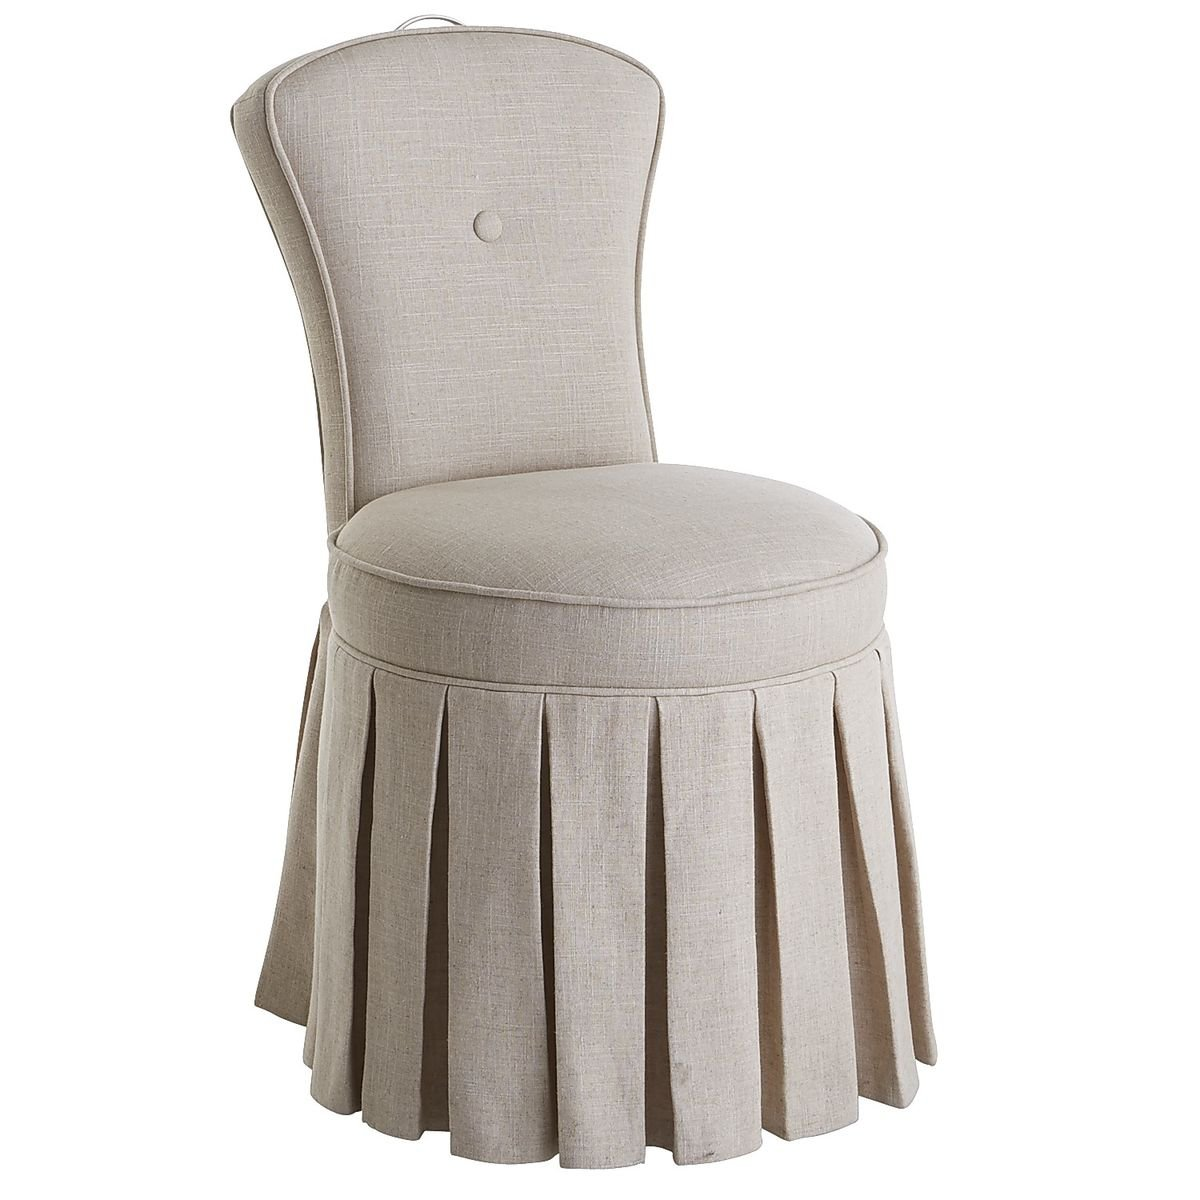 Silla Para Tocador Reese Skirted Pier 1 Imports Sears